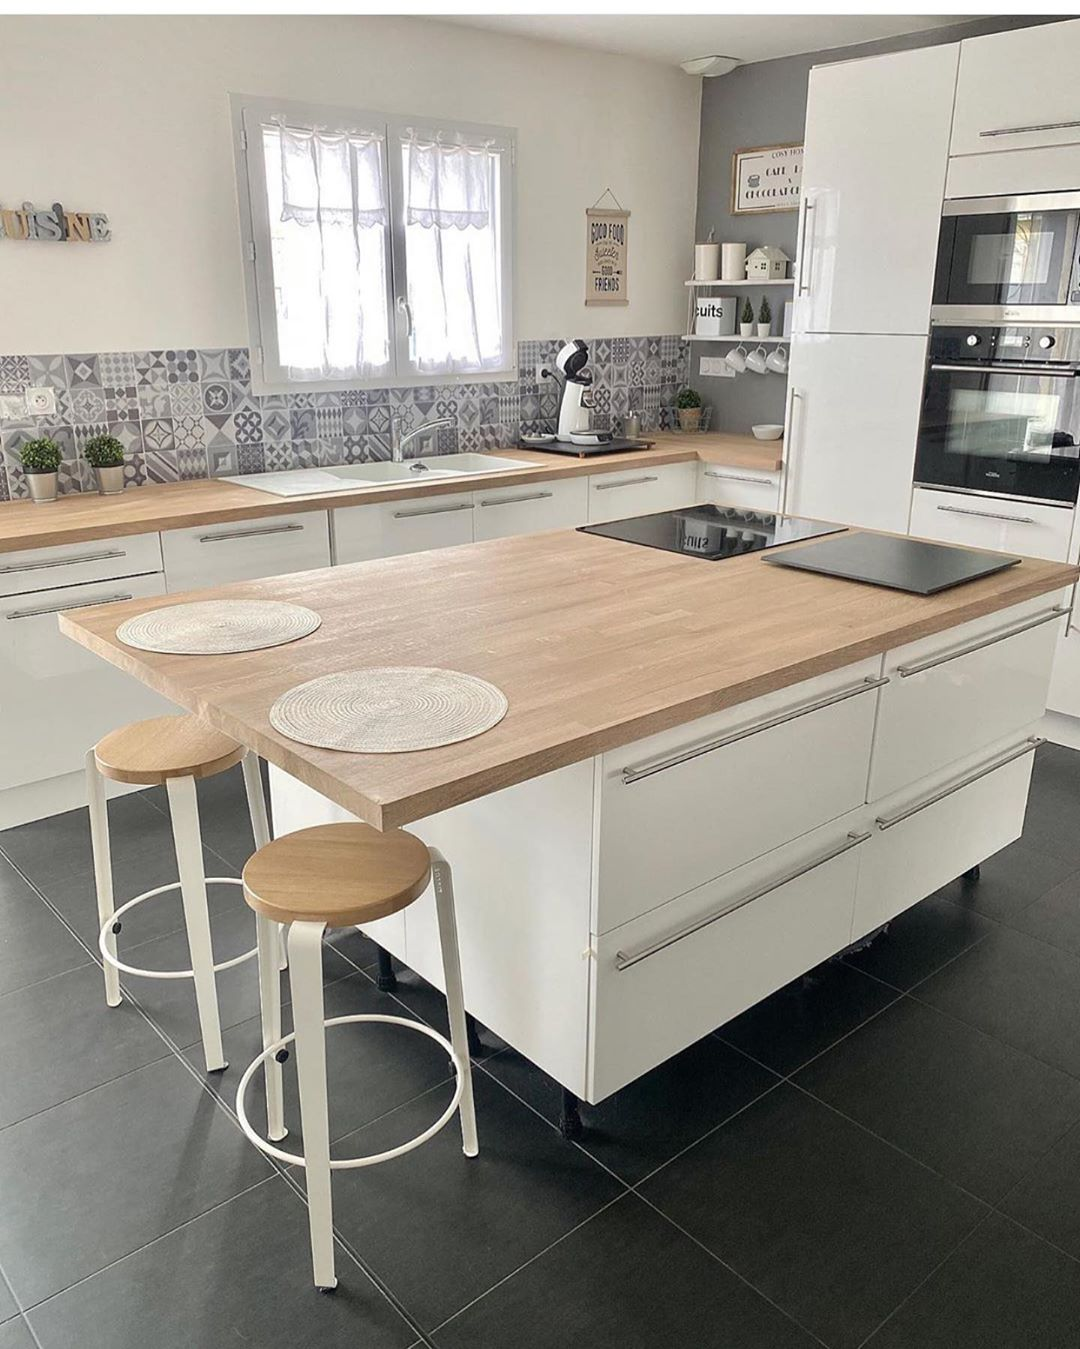 The Most Spectacular Kitchen Decoration Models of 2021 (21)